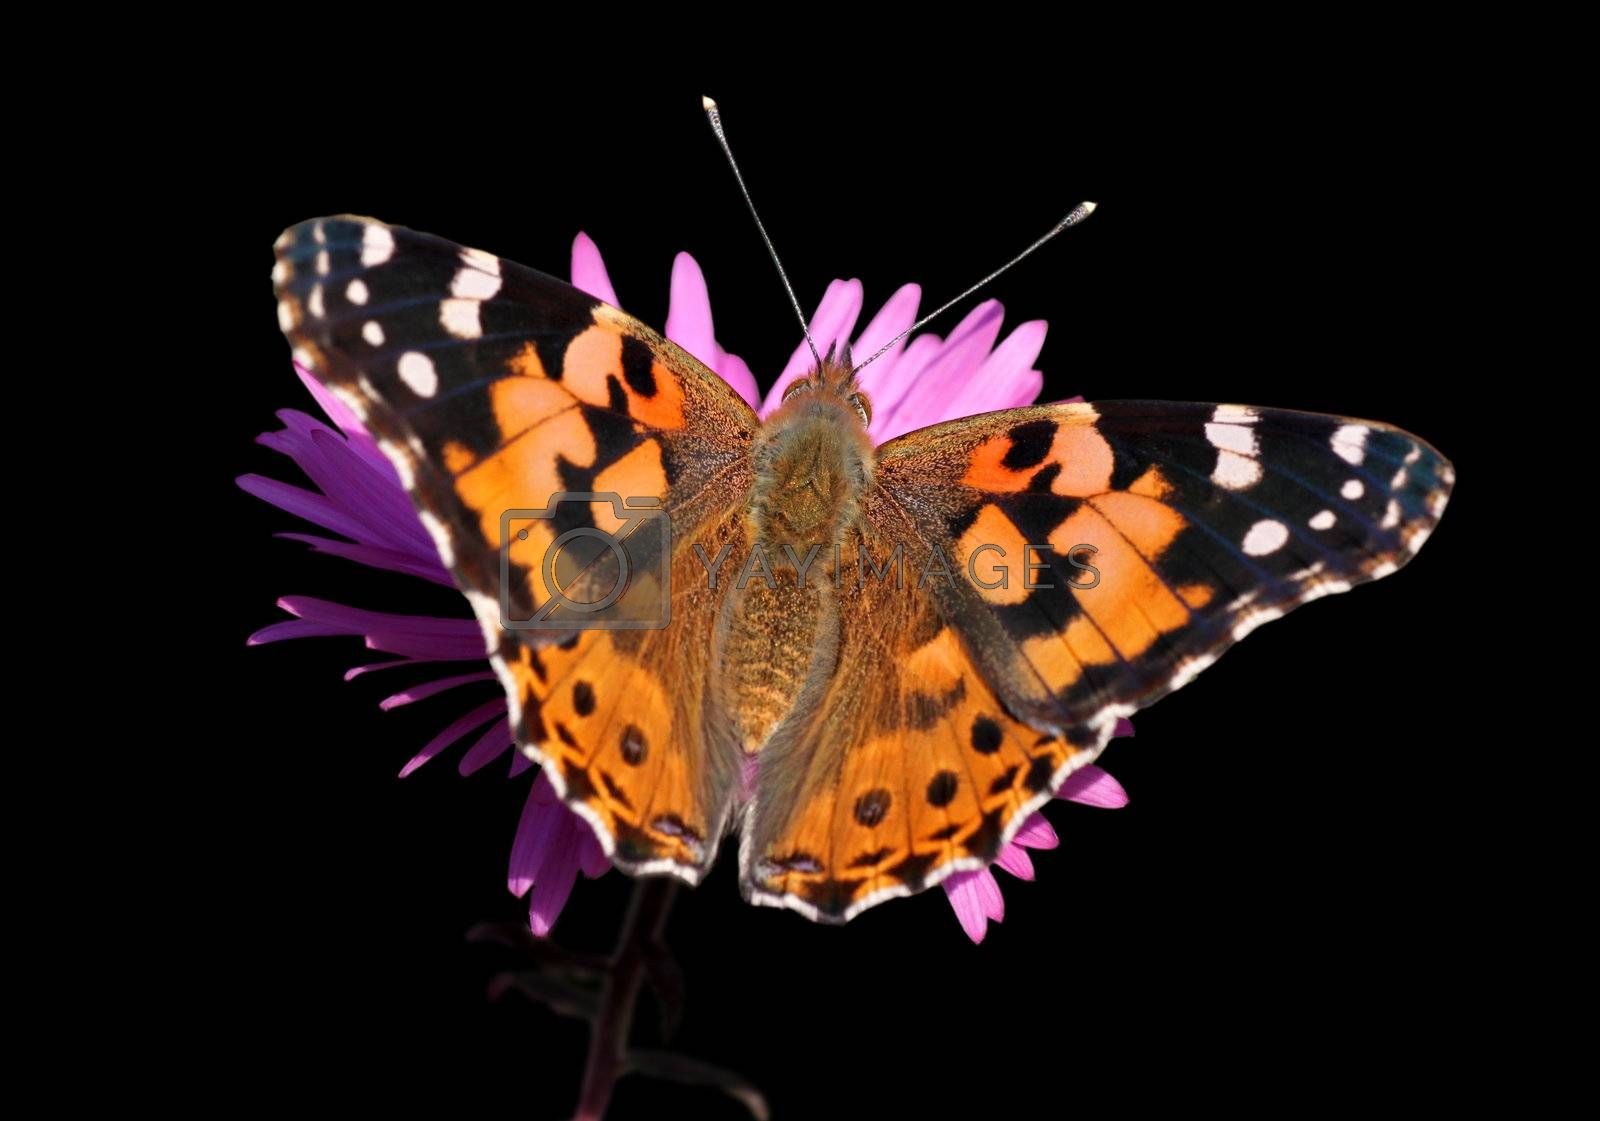 butterfly (Painted Lady) on flower over black